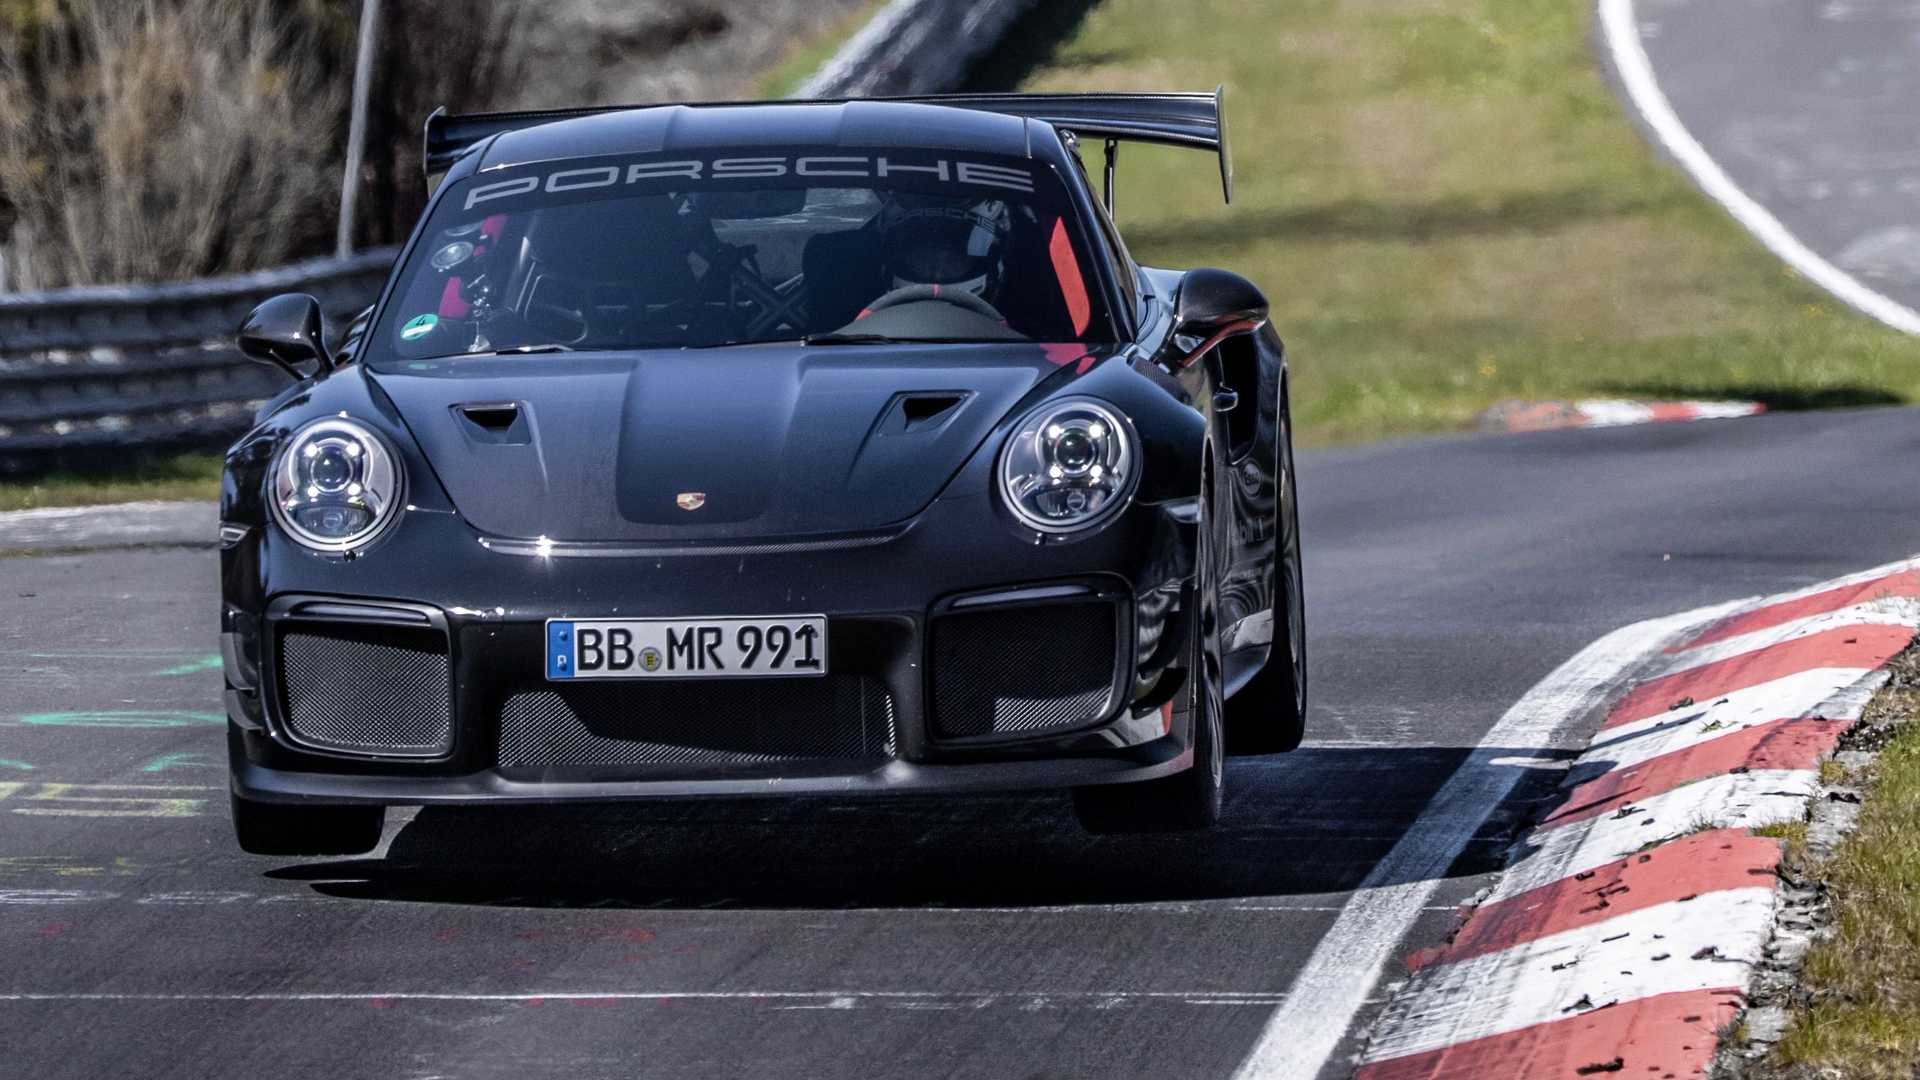 Porsche-911-GT2-RS-Manthey-Performance-Kit-Nurburgring-Record-29